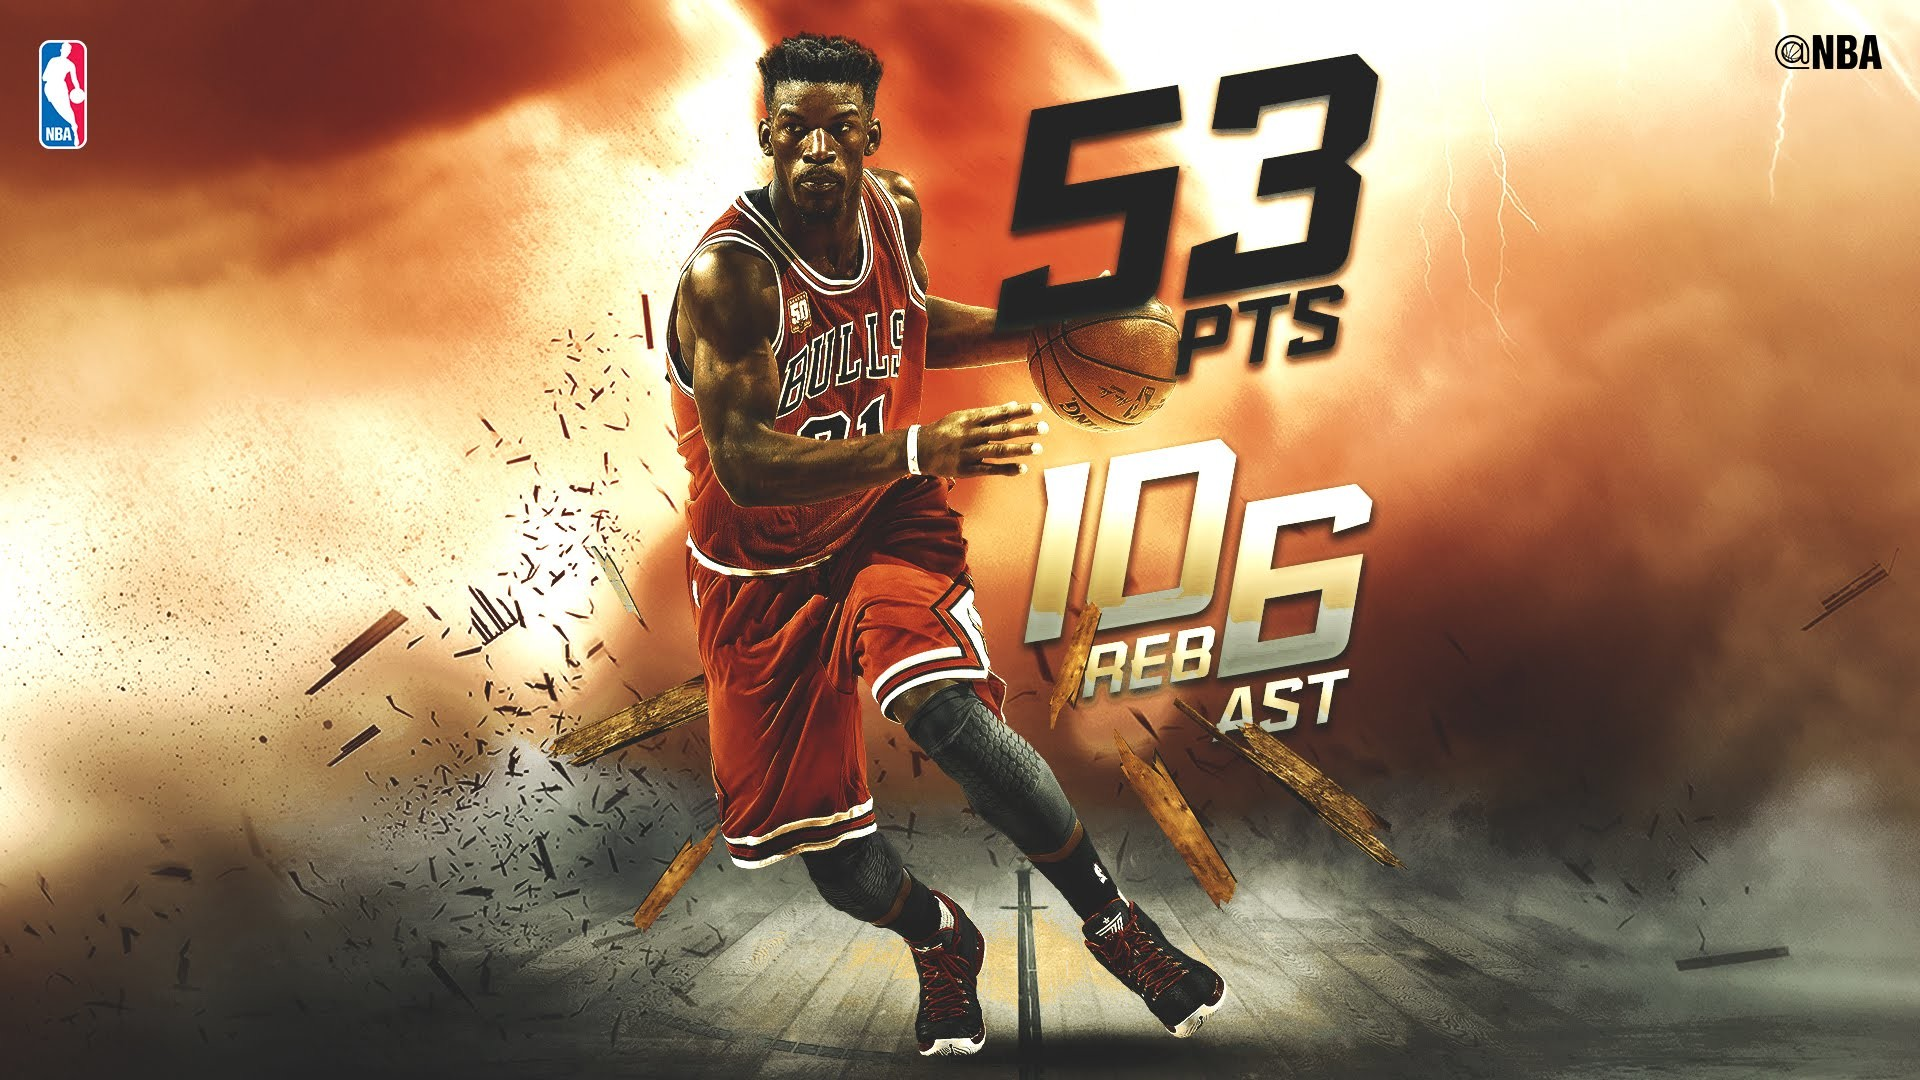 Bulls Iphone Wallpaper Jimmy Butler Wallpapers 67 Images